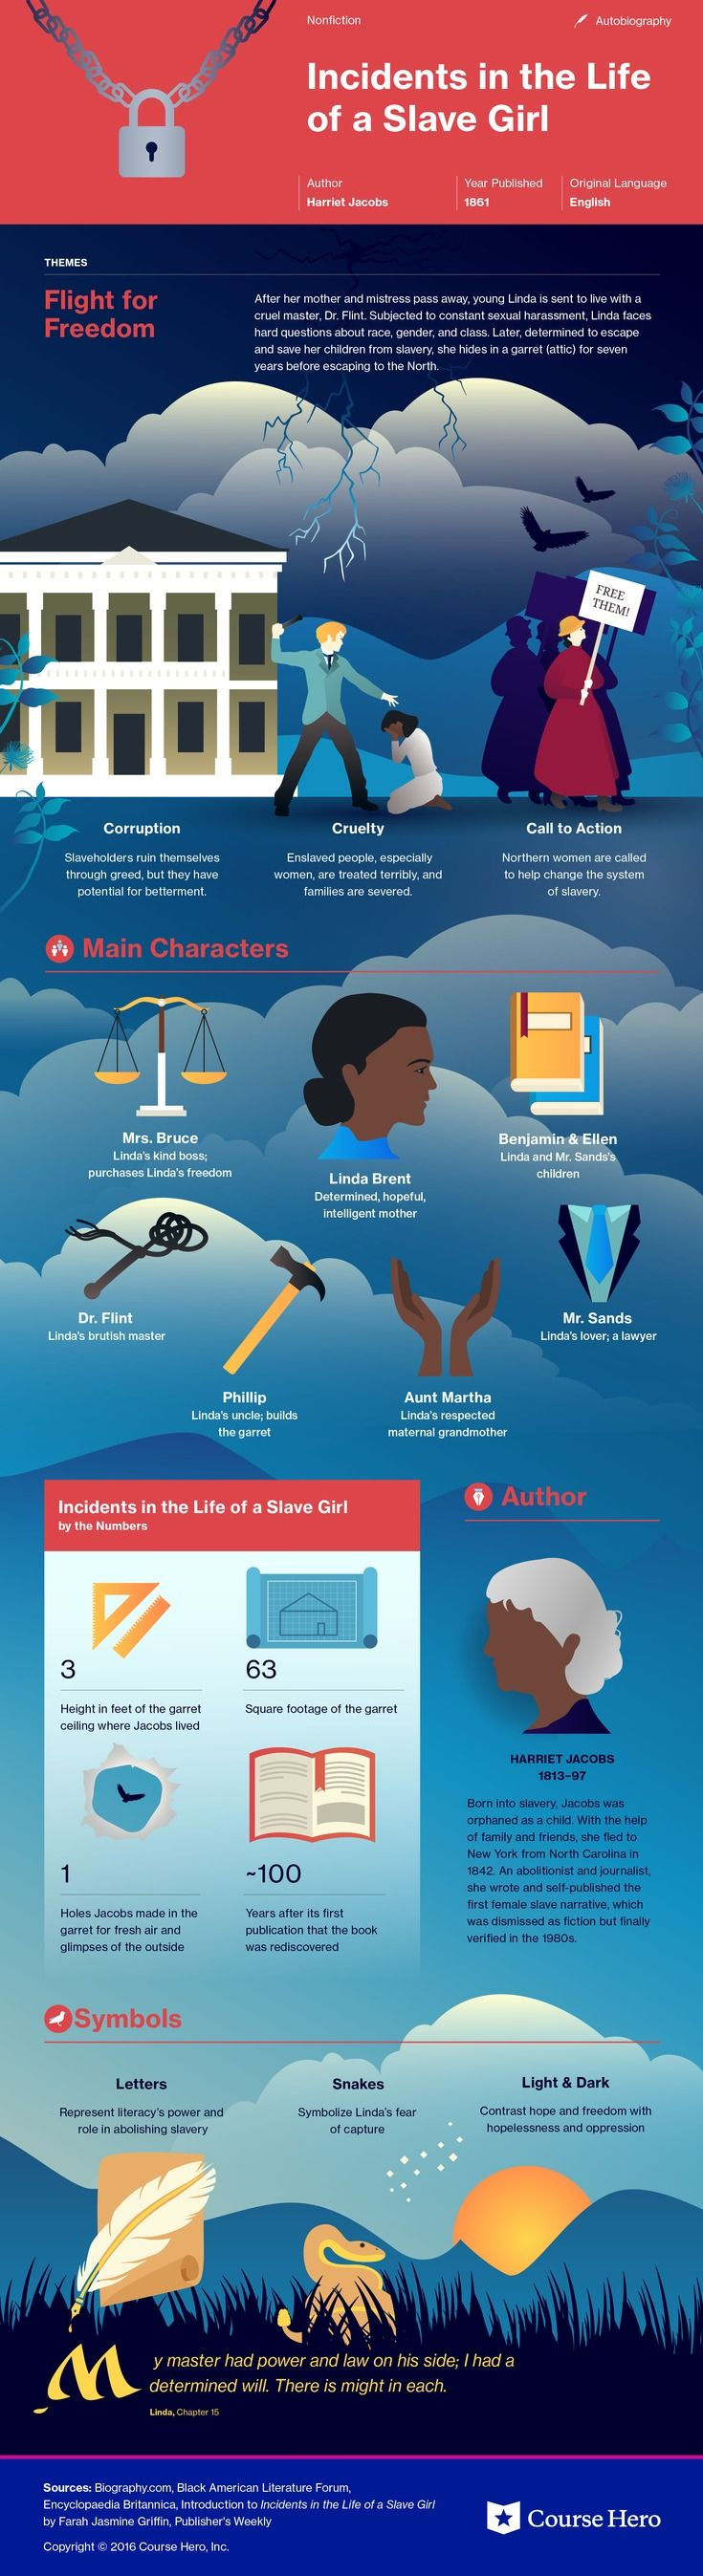 best schule diverses images english literature this coursehero infographic on incidents in the life of a slave girl is both visually